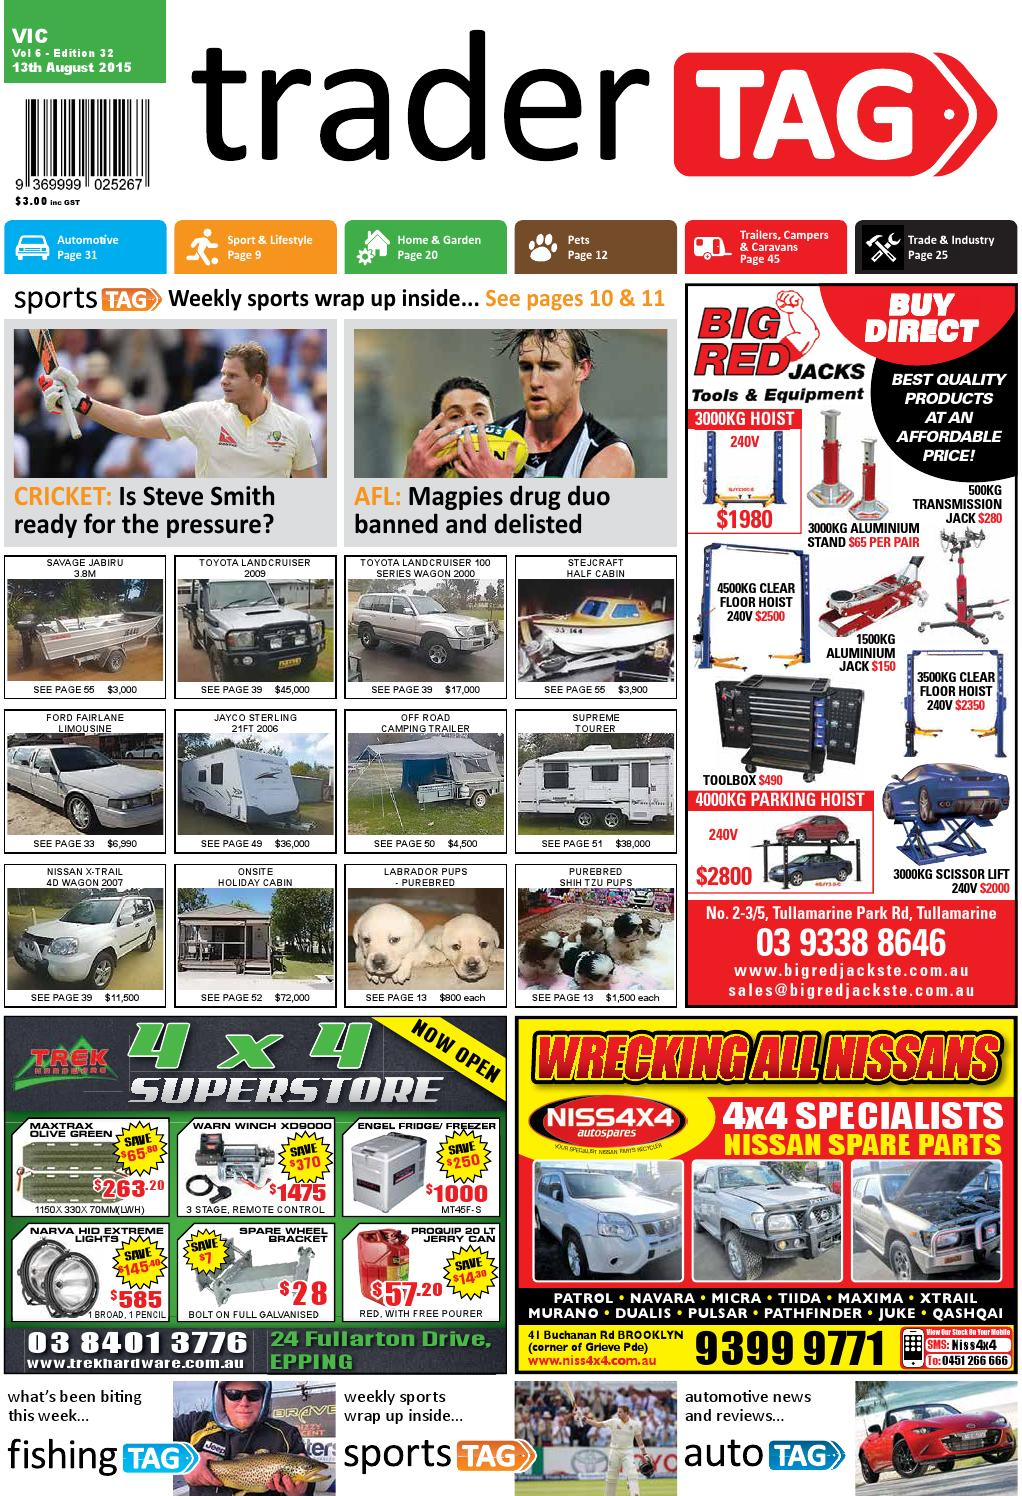 Tradertag Victoria Edition 32 2015 By Design Issuu Kpx Dirt Bike Wiring Diagram